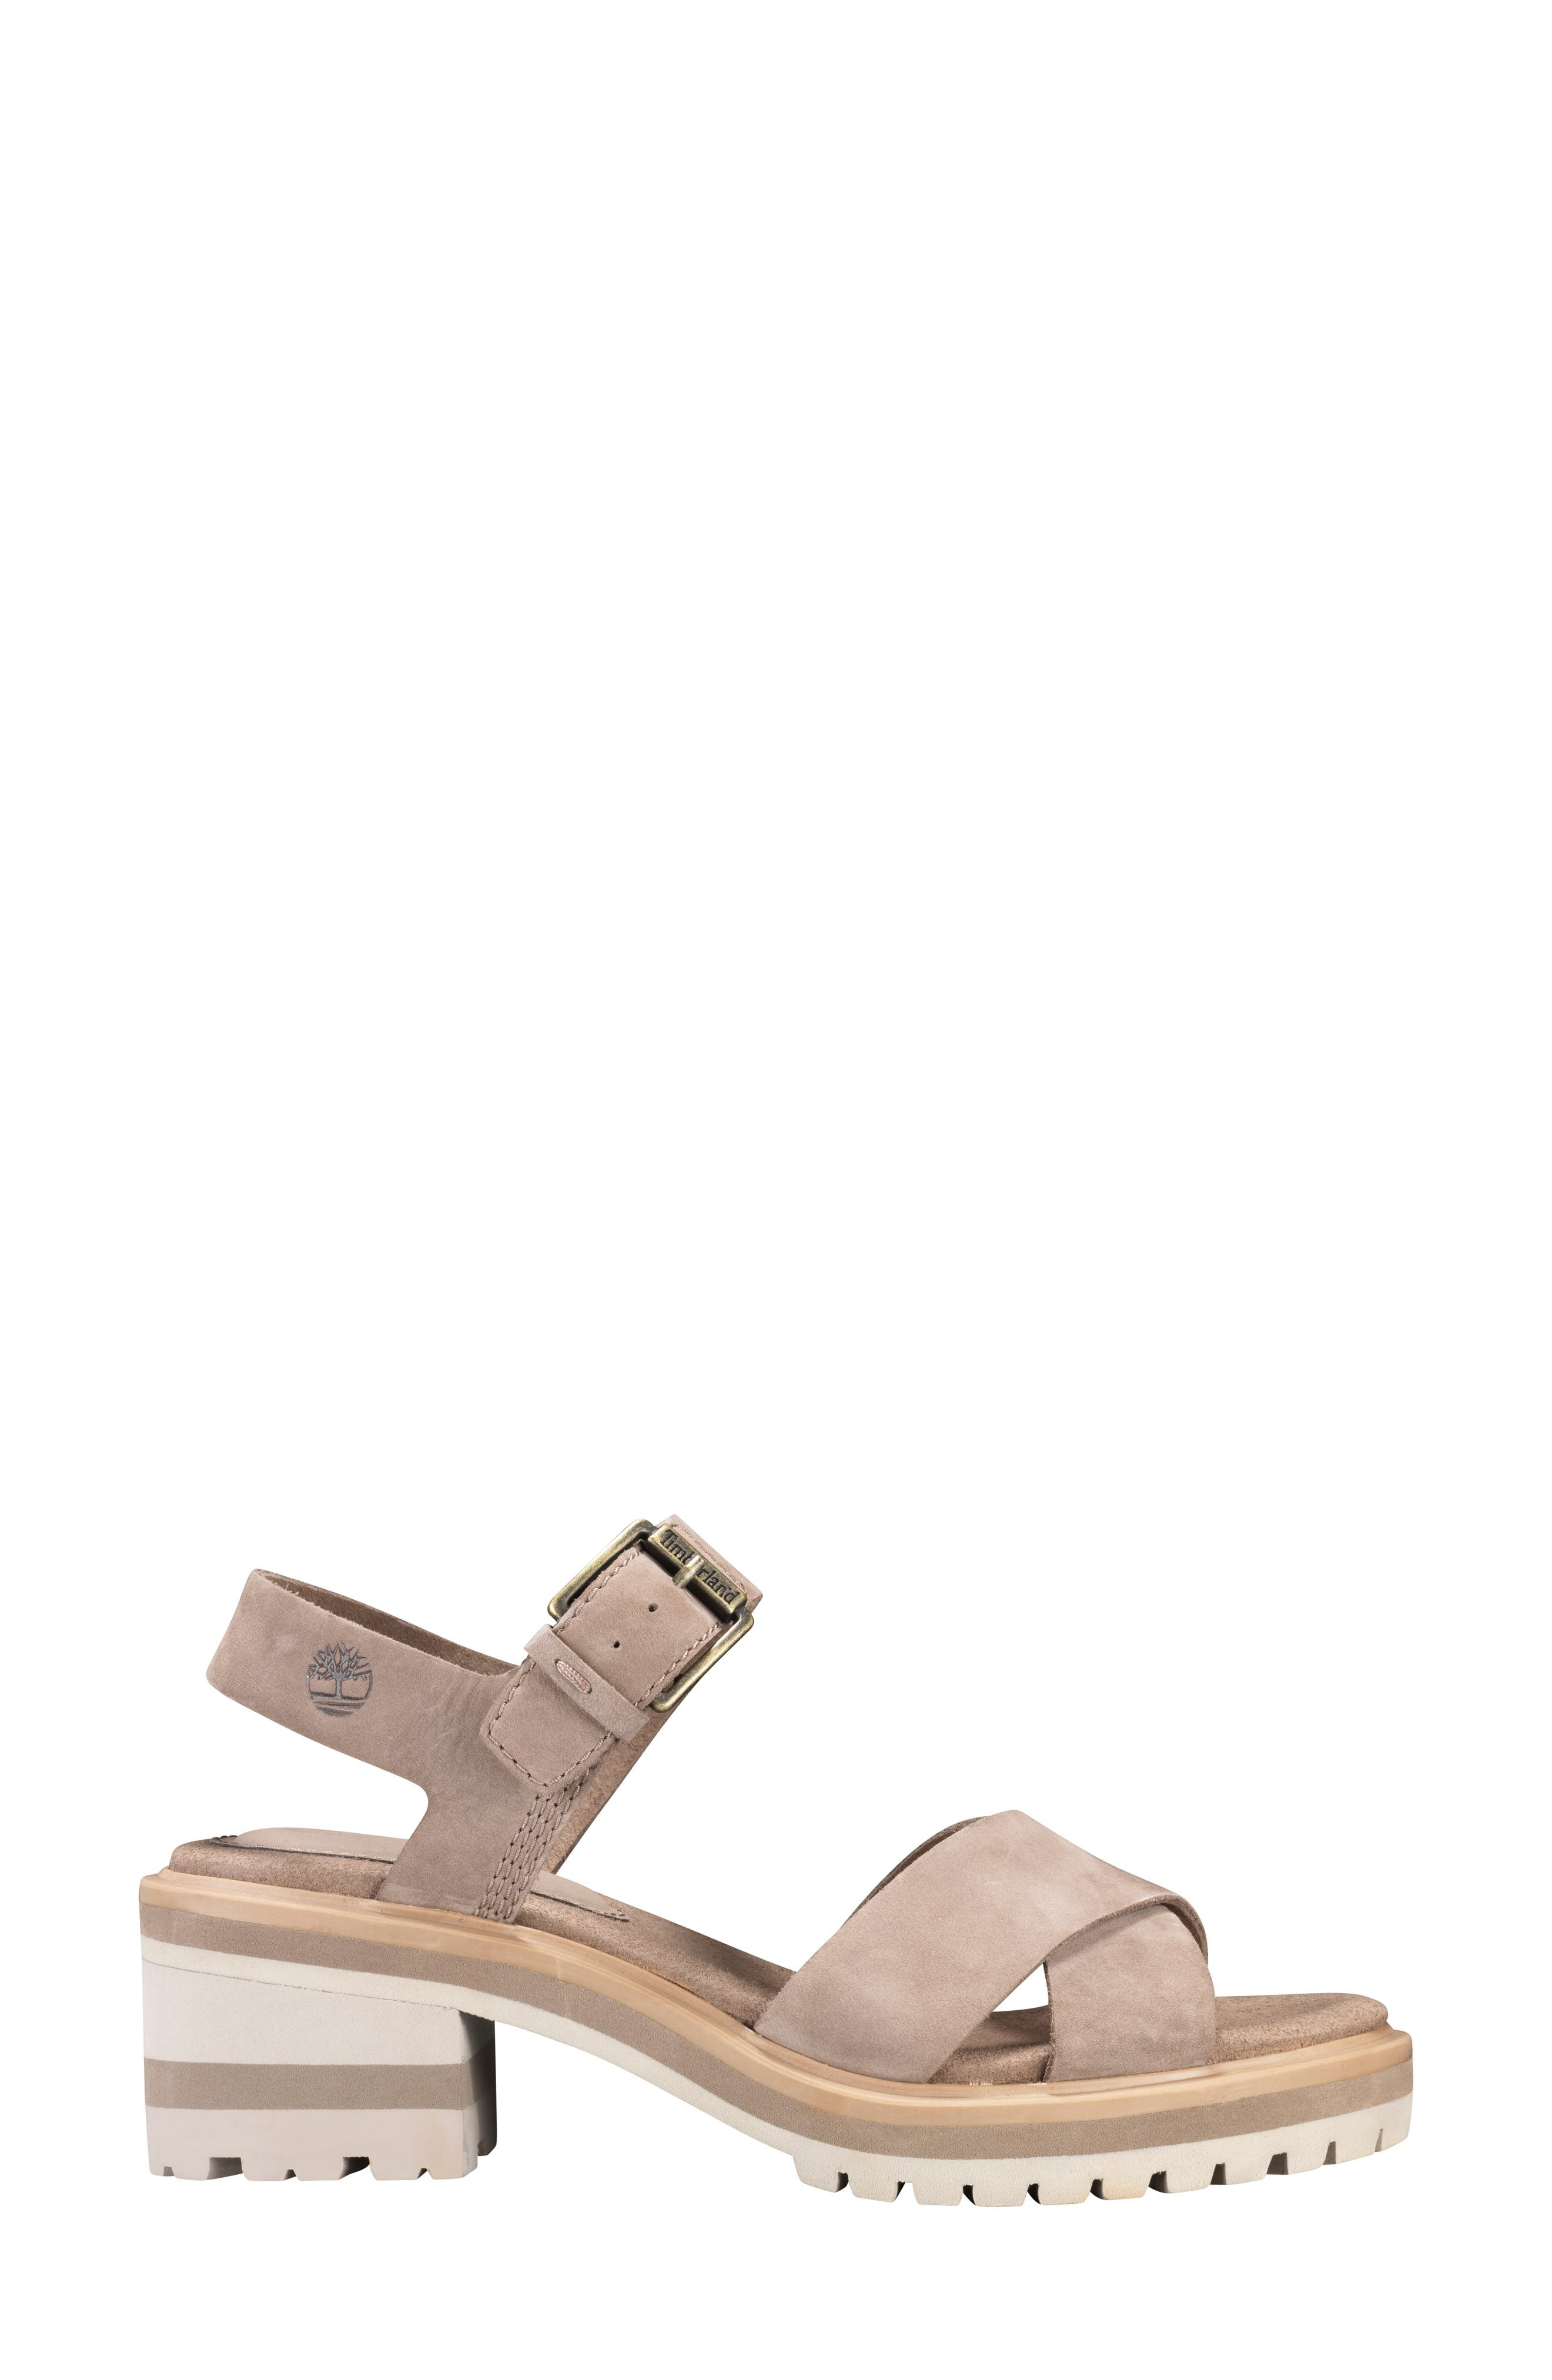 TIMBERLAND,                             Violet March Crisscross Sandal,                             Alternate thumbnail 3, color,                             TAUPE NUBUCK LEATHER